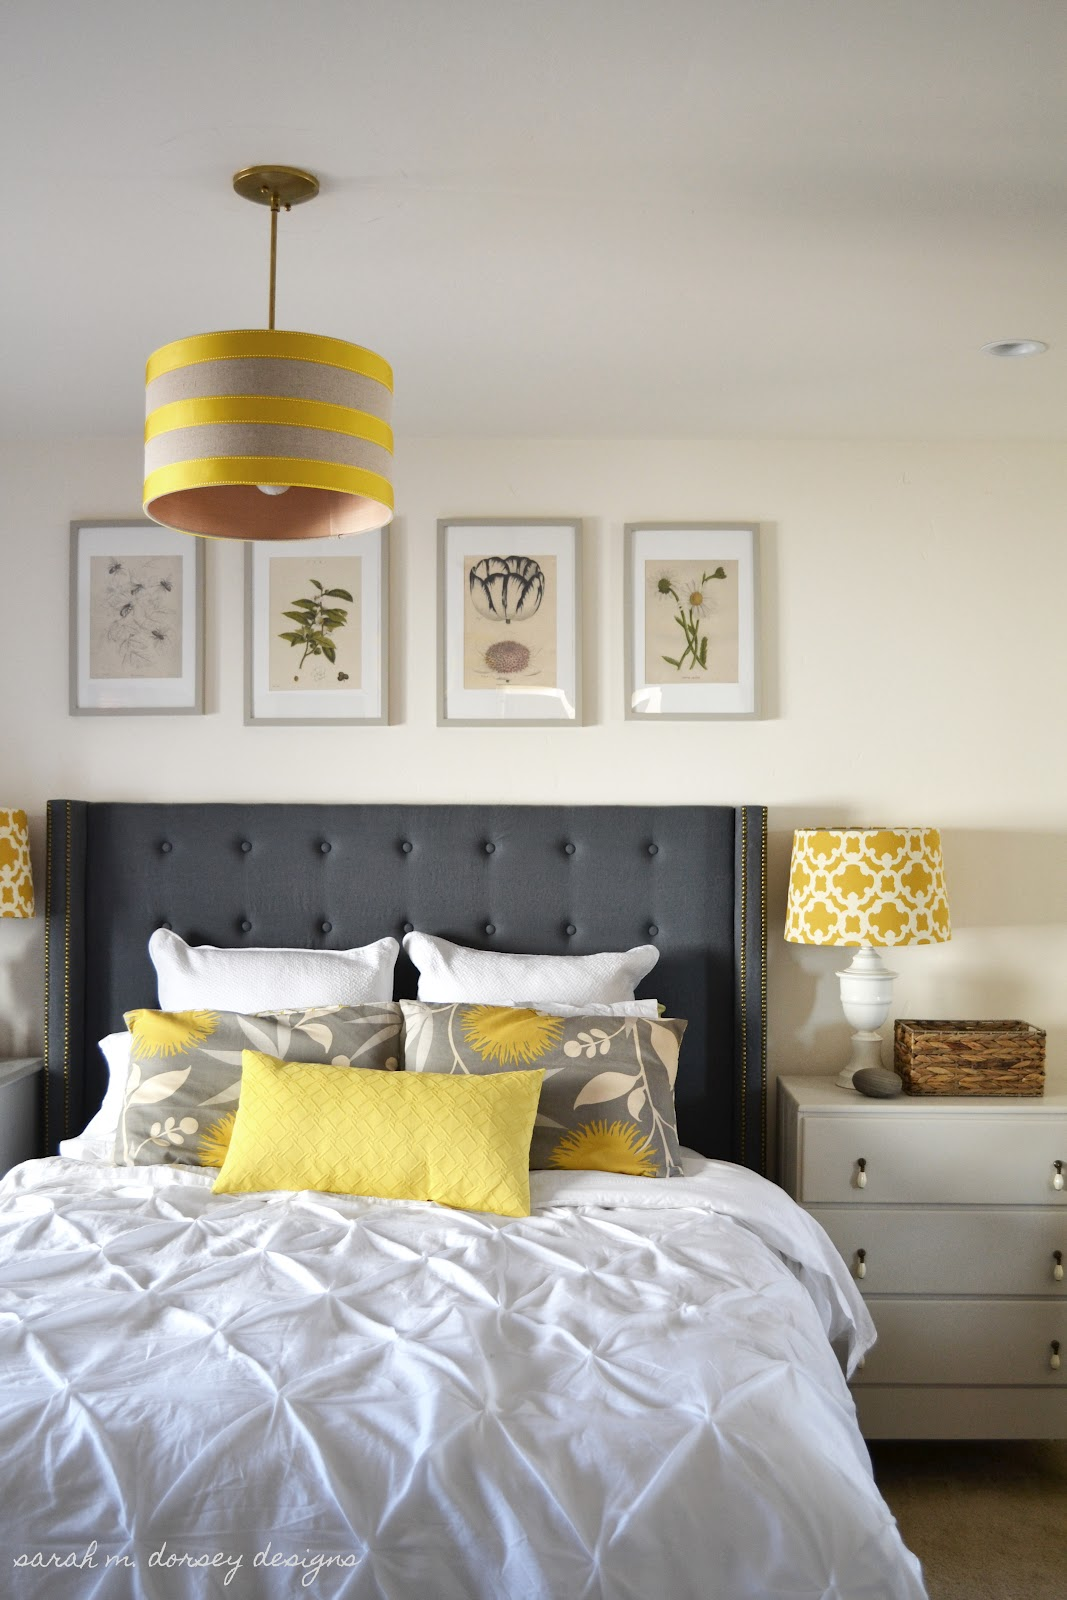 sarah m dorsey designs art for above the headboard take 1. Black Bedroom Furniture Sets. Home Design Ideas